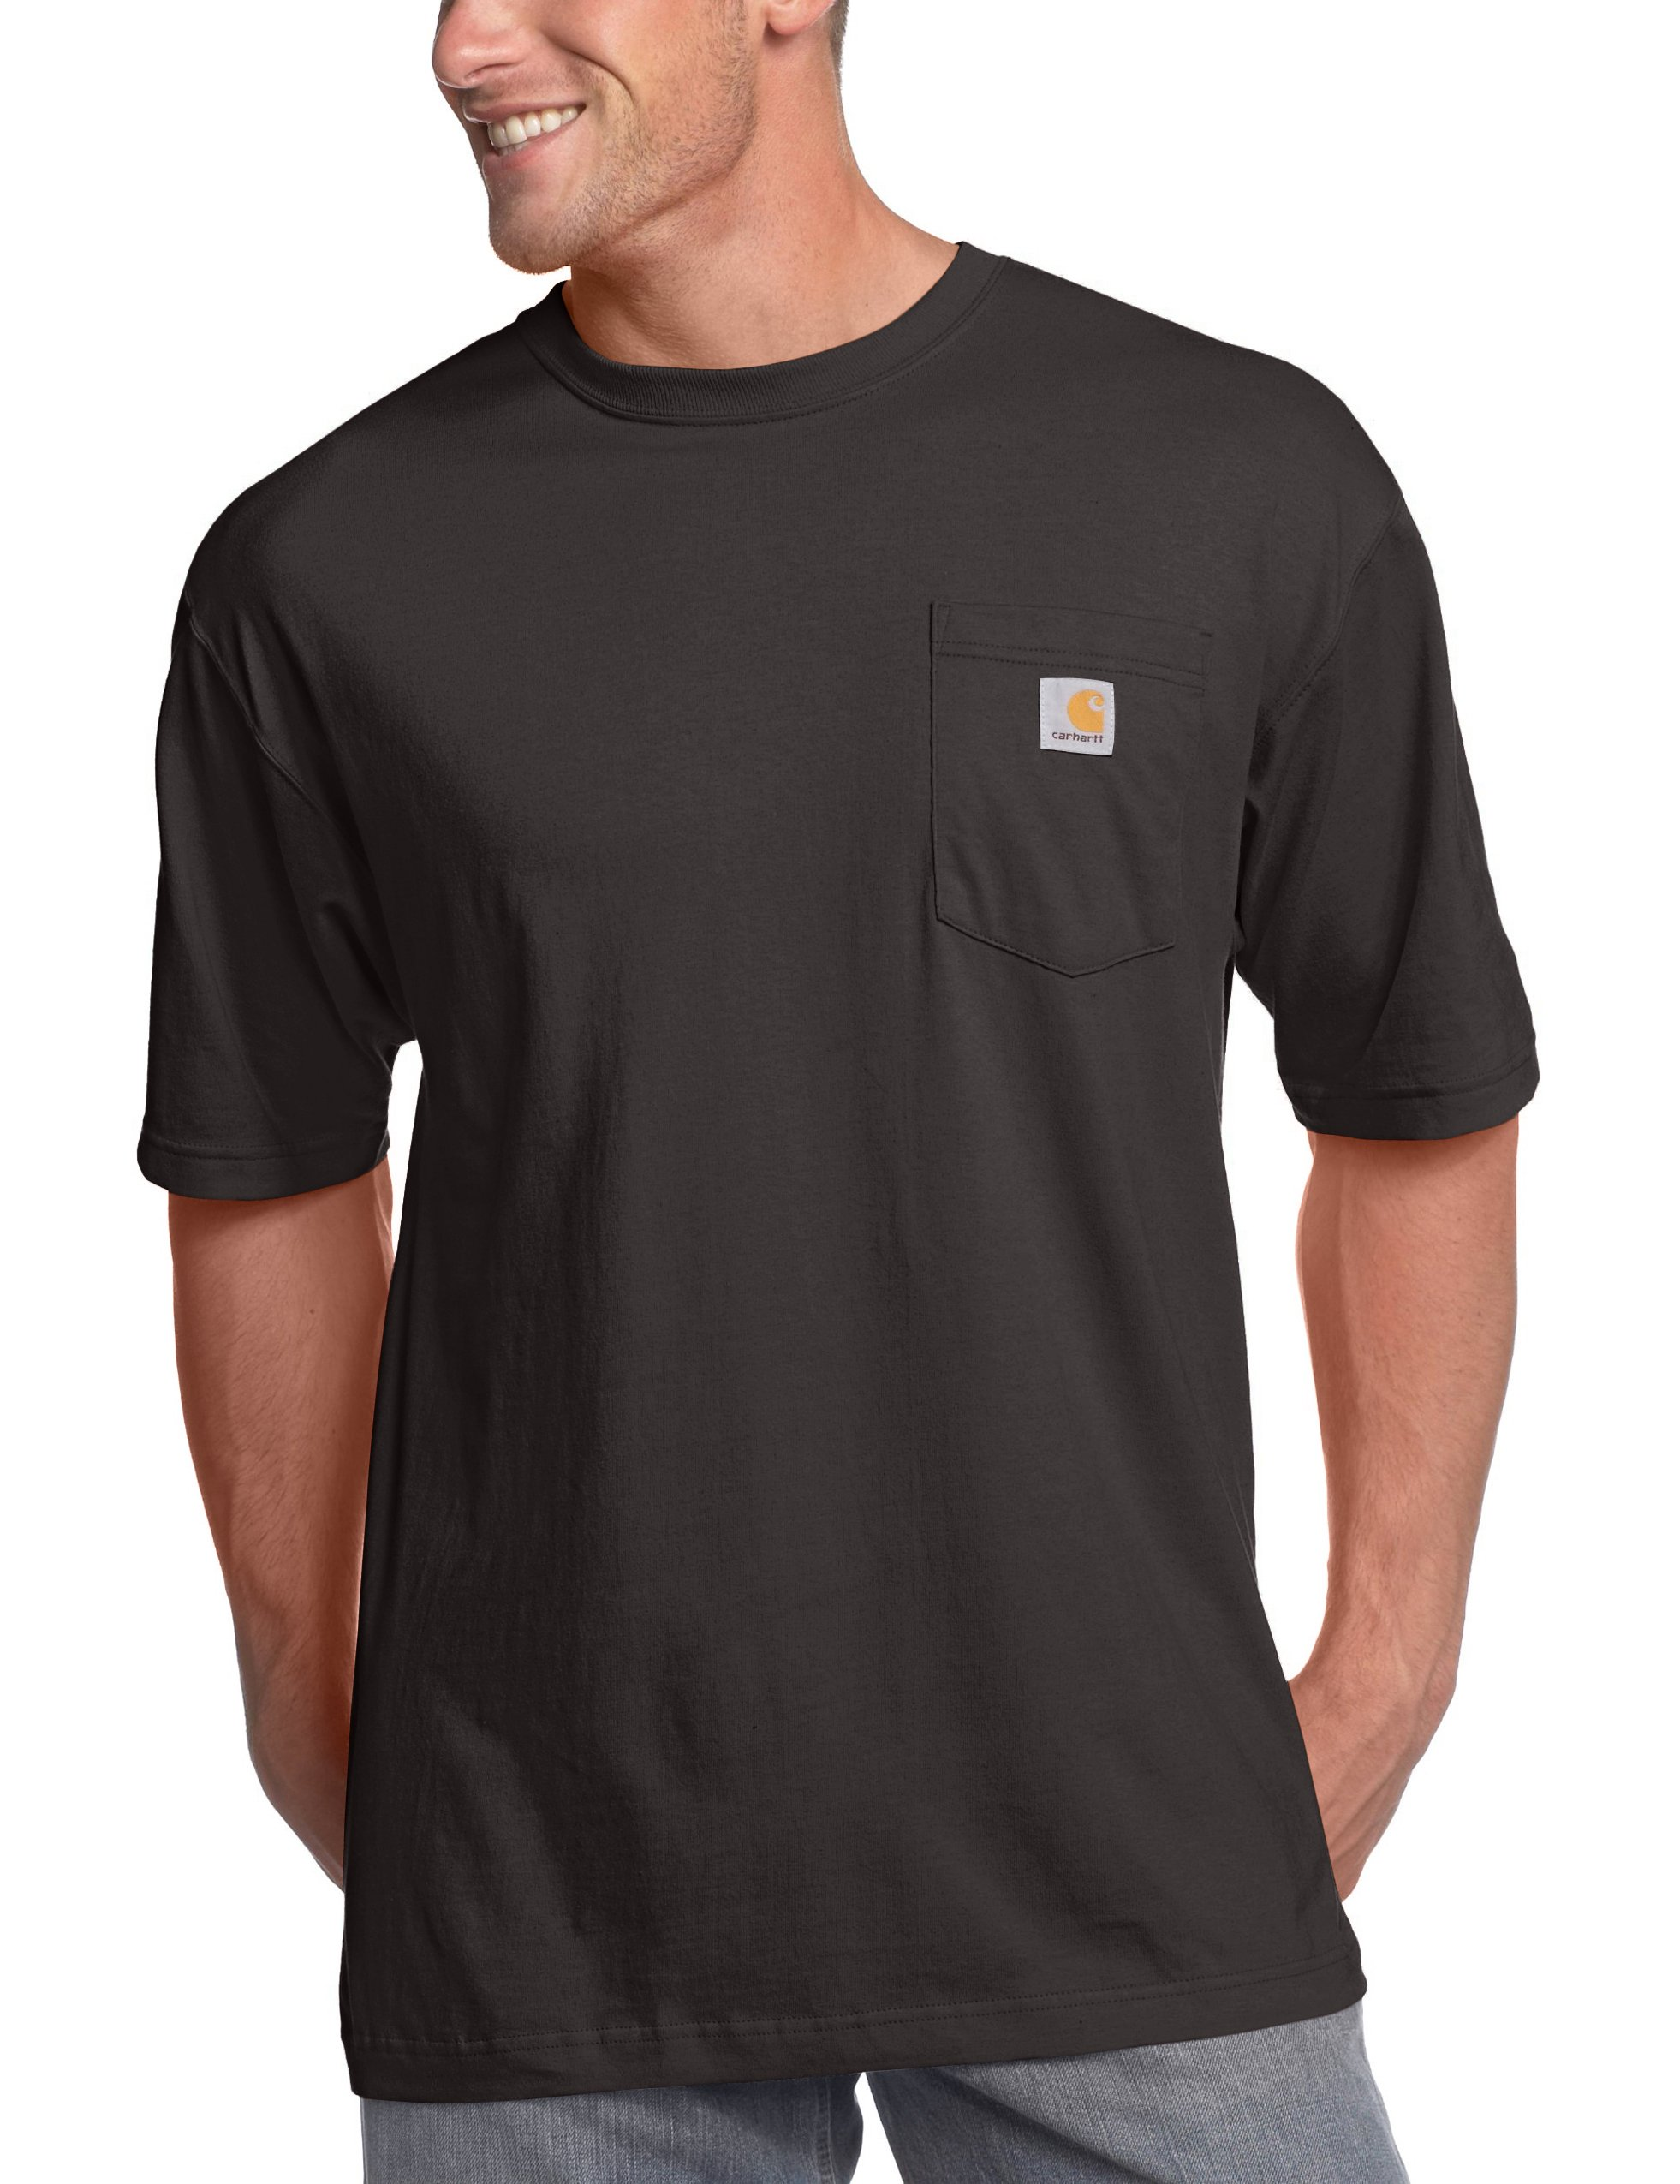 Carhartt Men's Big & Tall Workwear Pocket Short Sleeve T-Shirt Original Fit K87,Black,2X-Large Tall